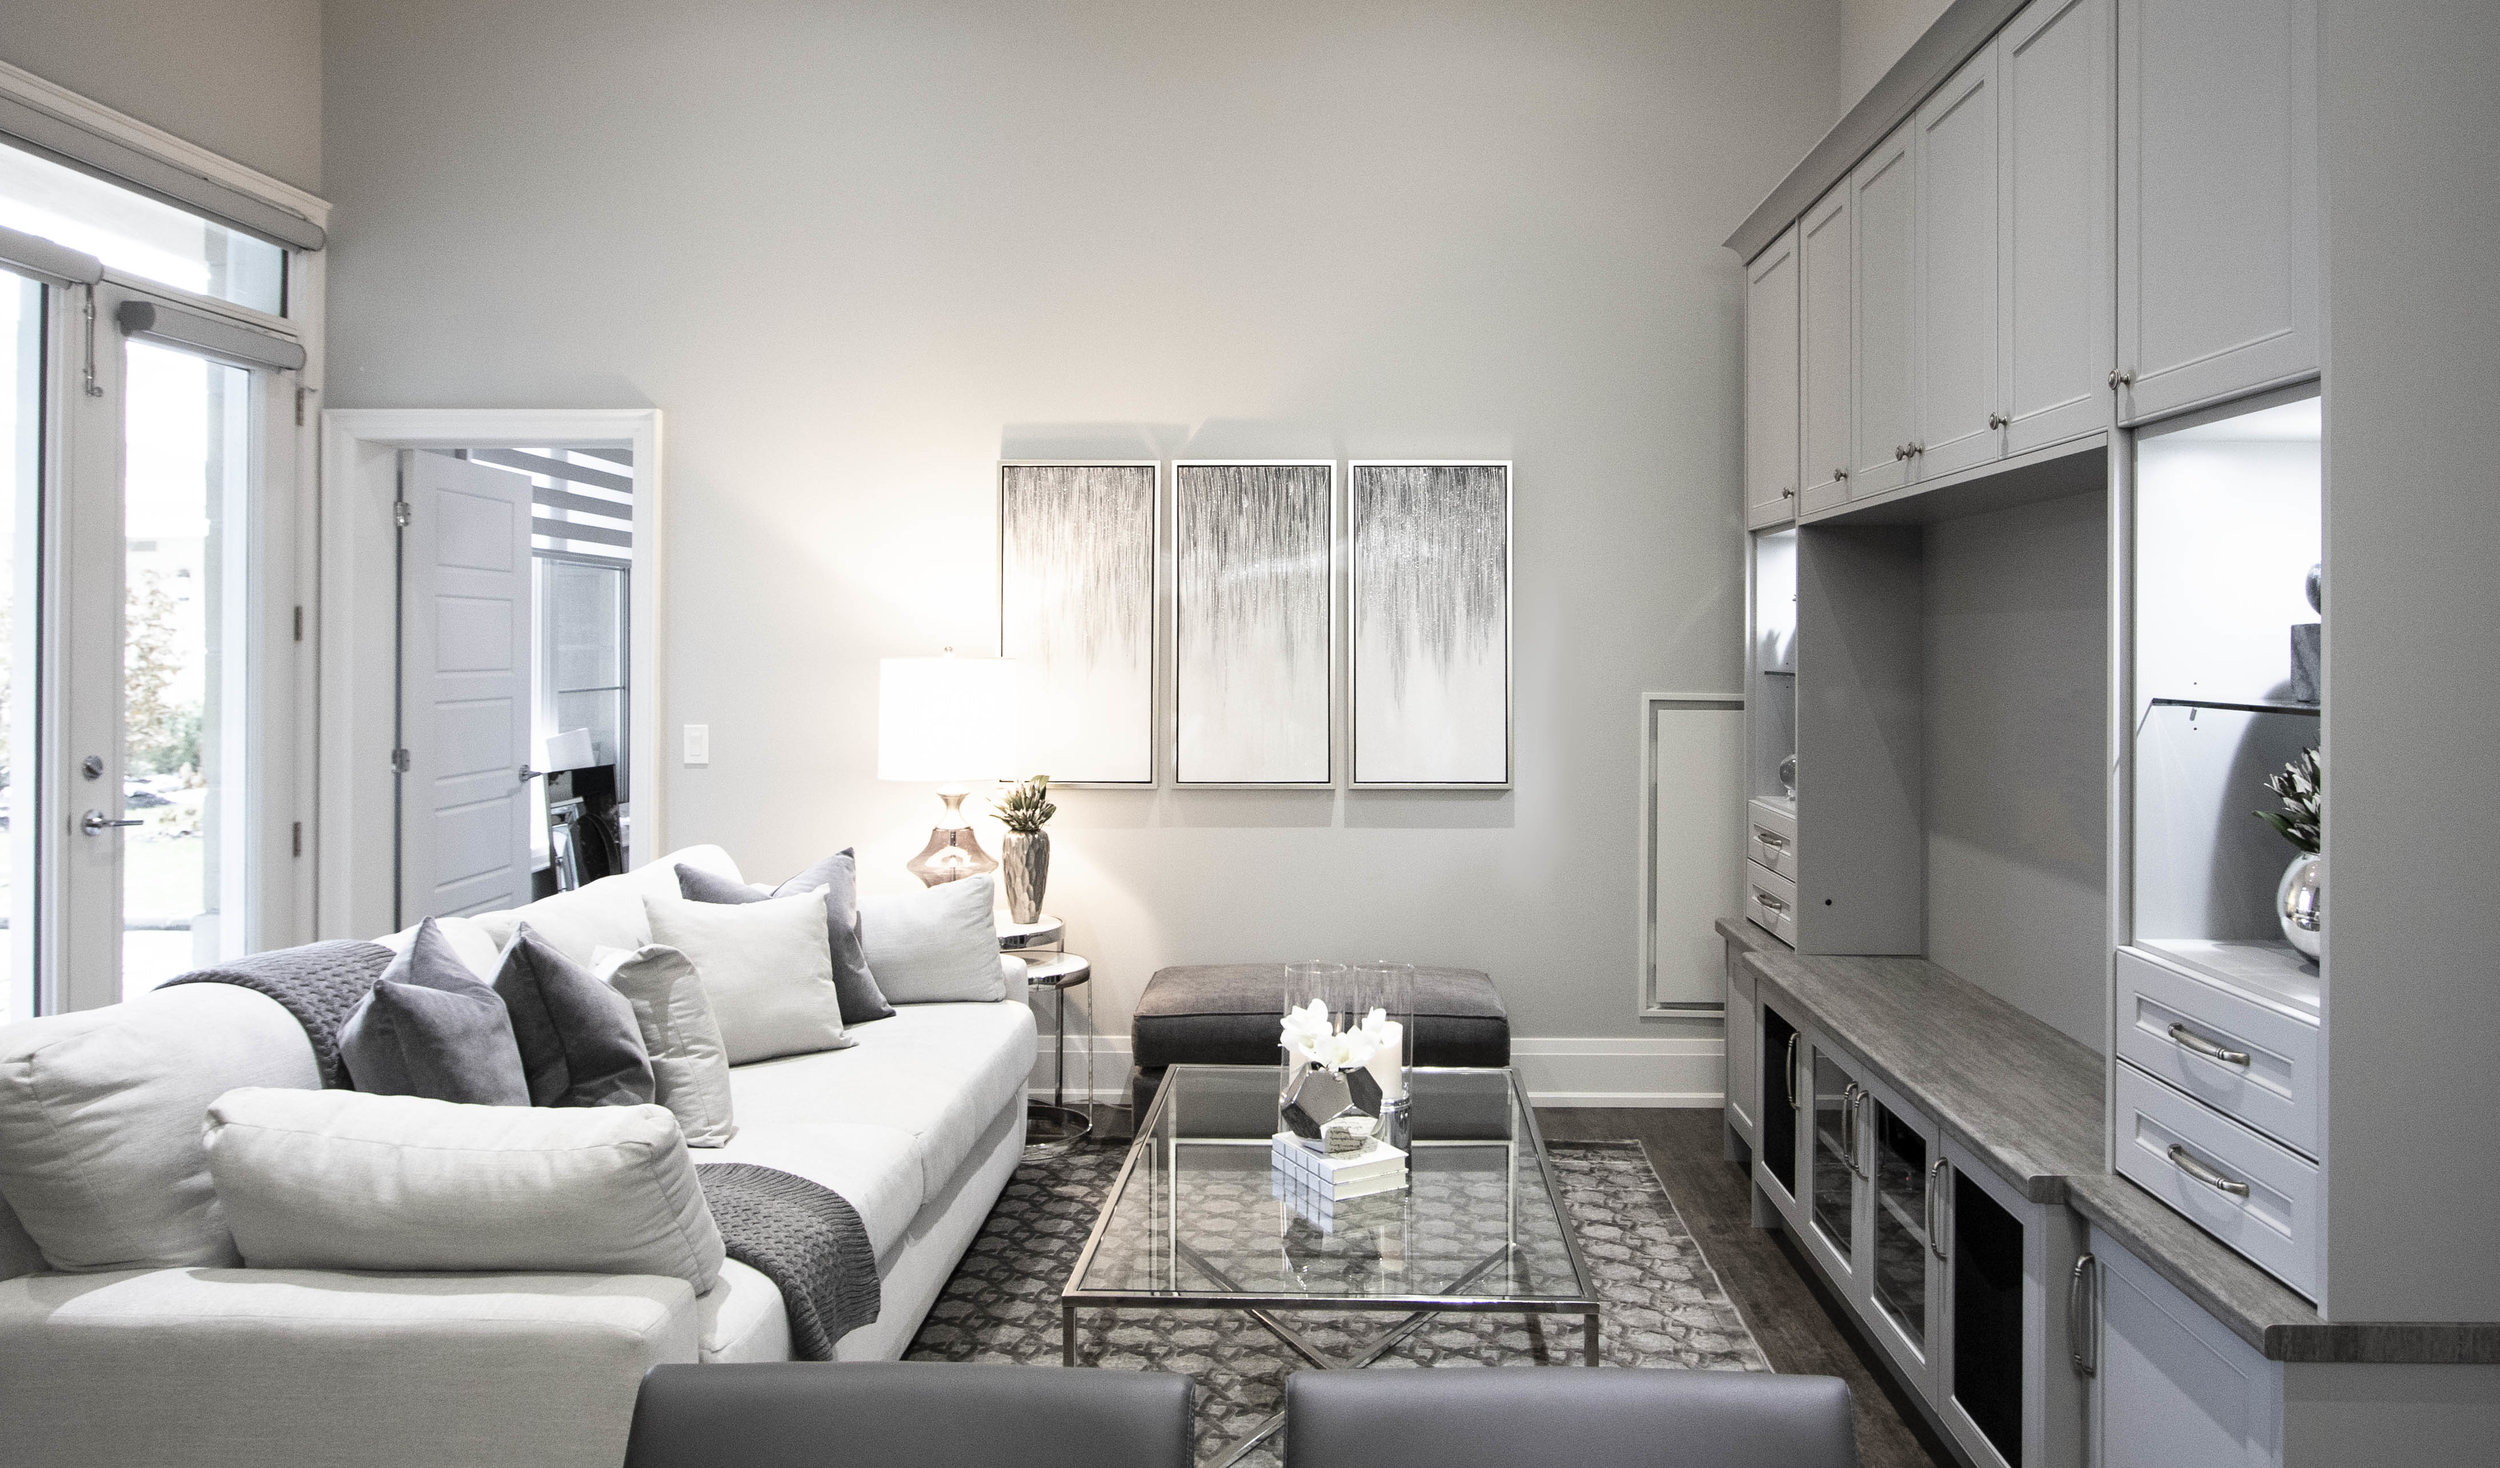 Woodbridge Condo Living And Dining Room Makeover Kimmberly Capone Interior Design